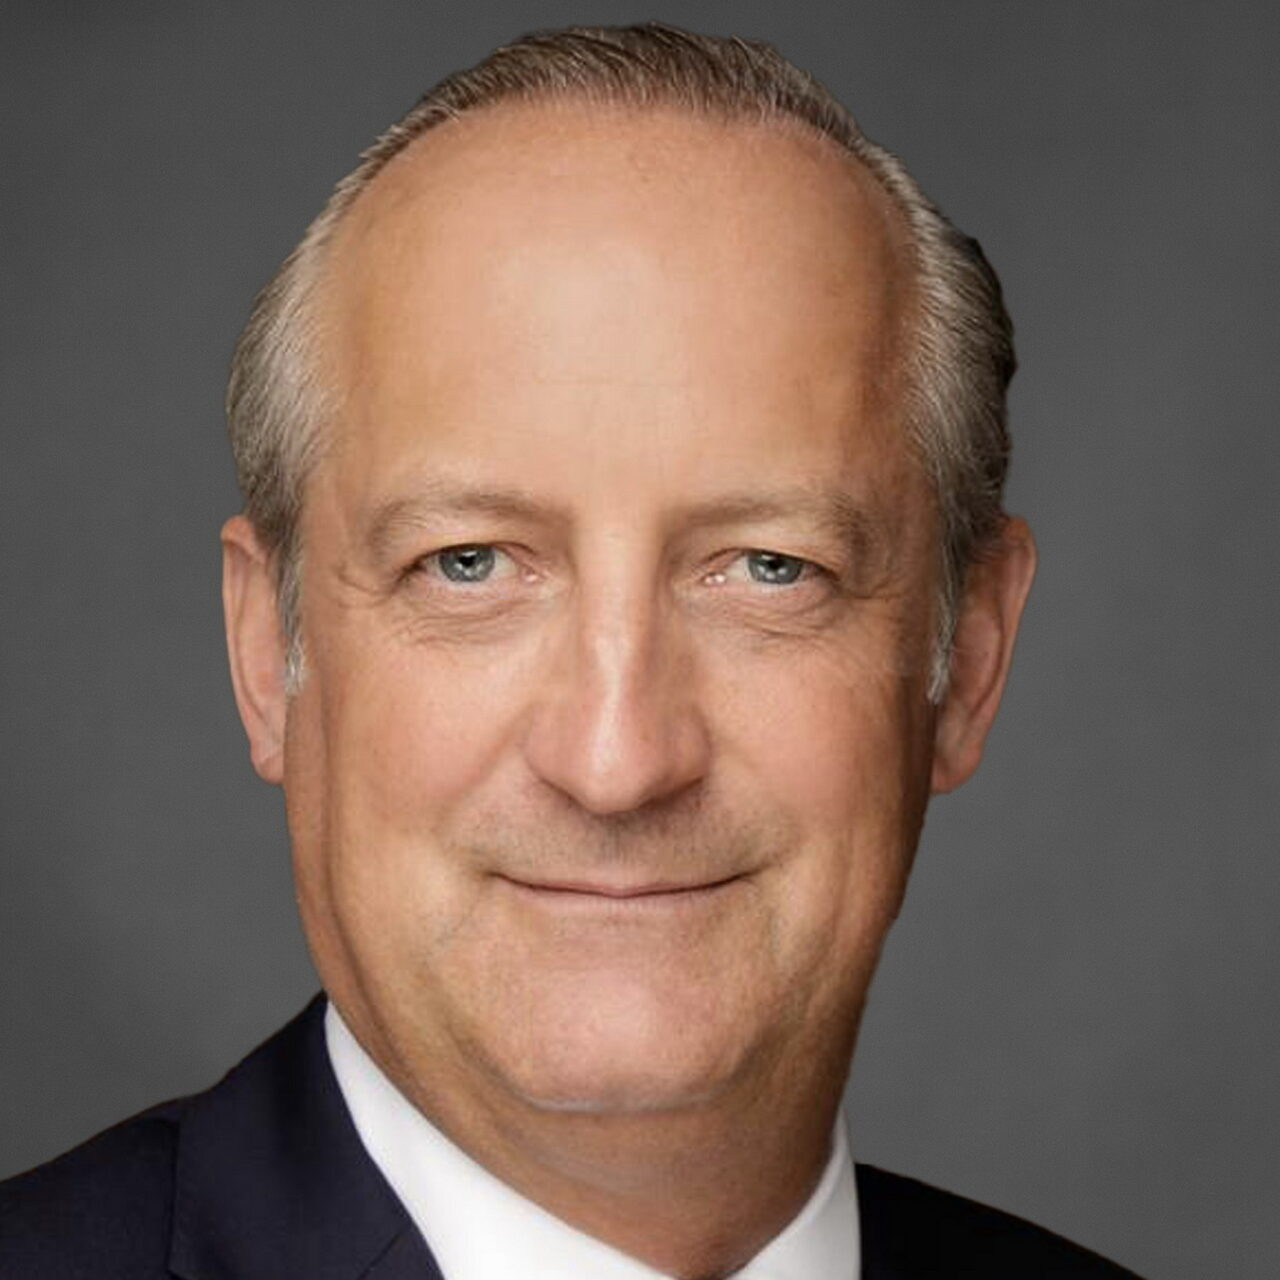 T. Rowe Price holt Peter Richters